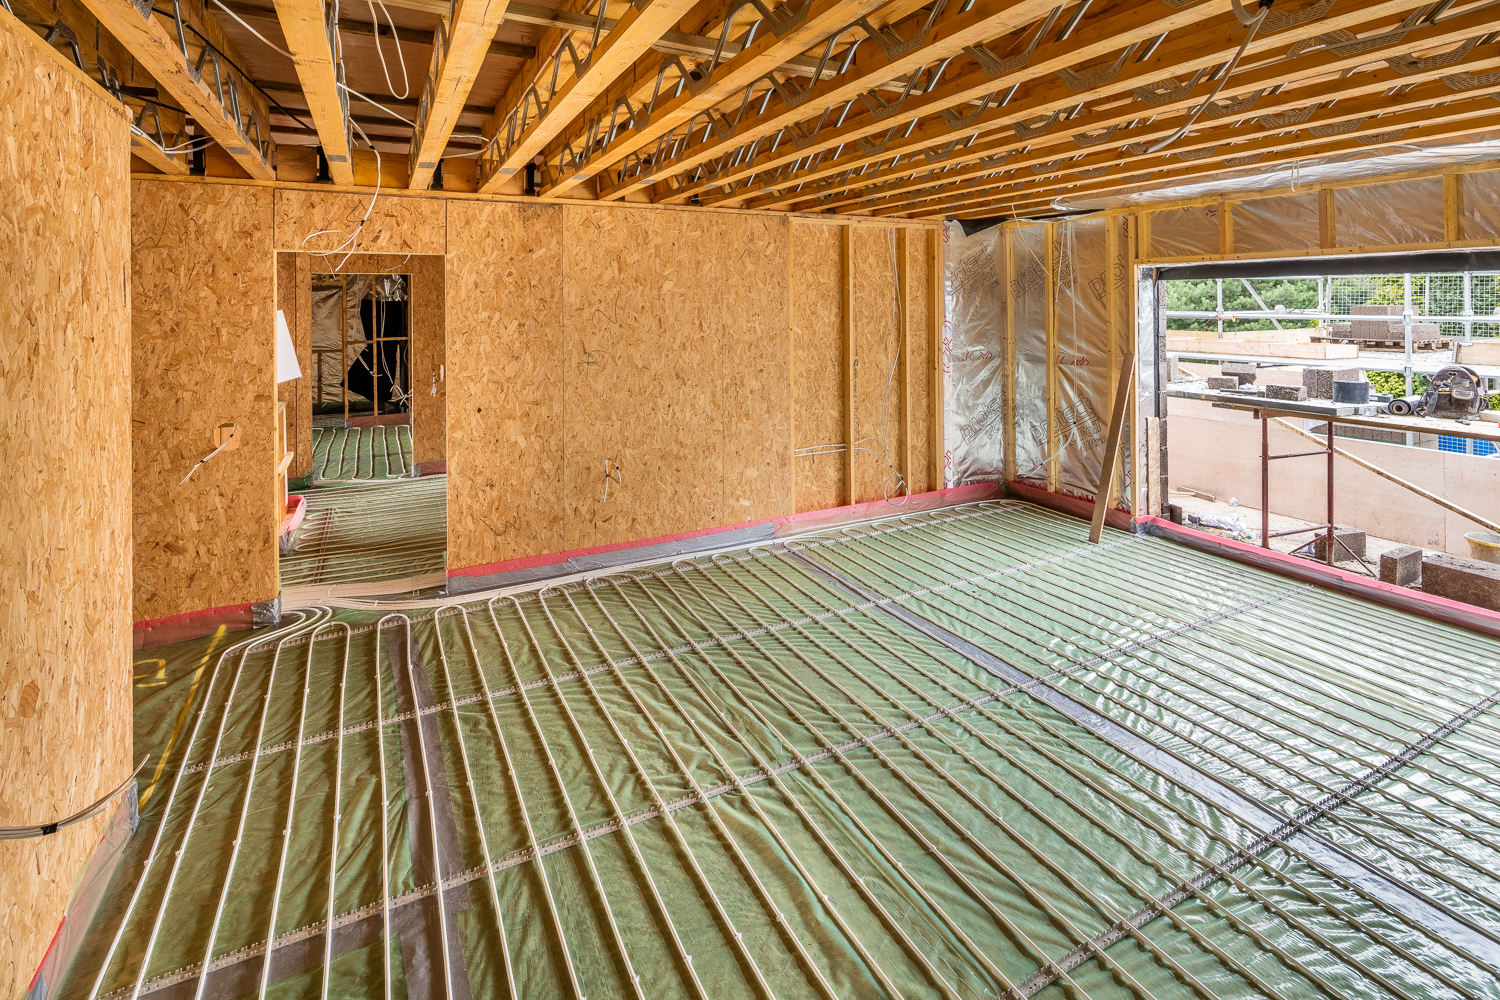 Can underfloor heating be installed into any floor construction?  - Incognito Heat Co provides systems to enable you to include underfloor heating into most floor constructions. The most common method is to include the pipework within the floor screed build-up in the initial stage. However we can also cater for joisted, structural, floating, and low profile systems.